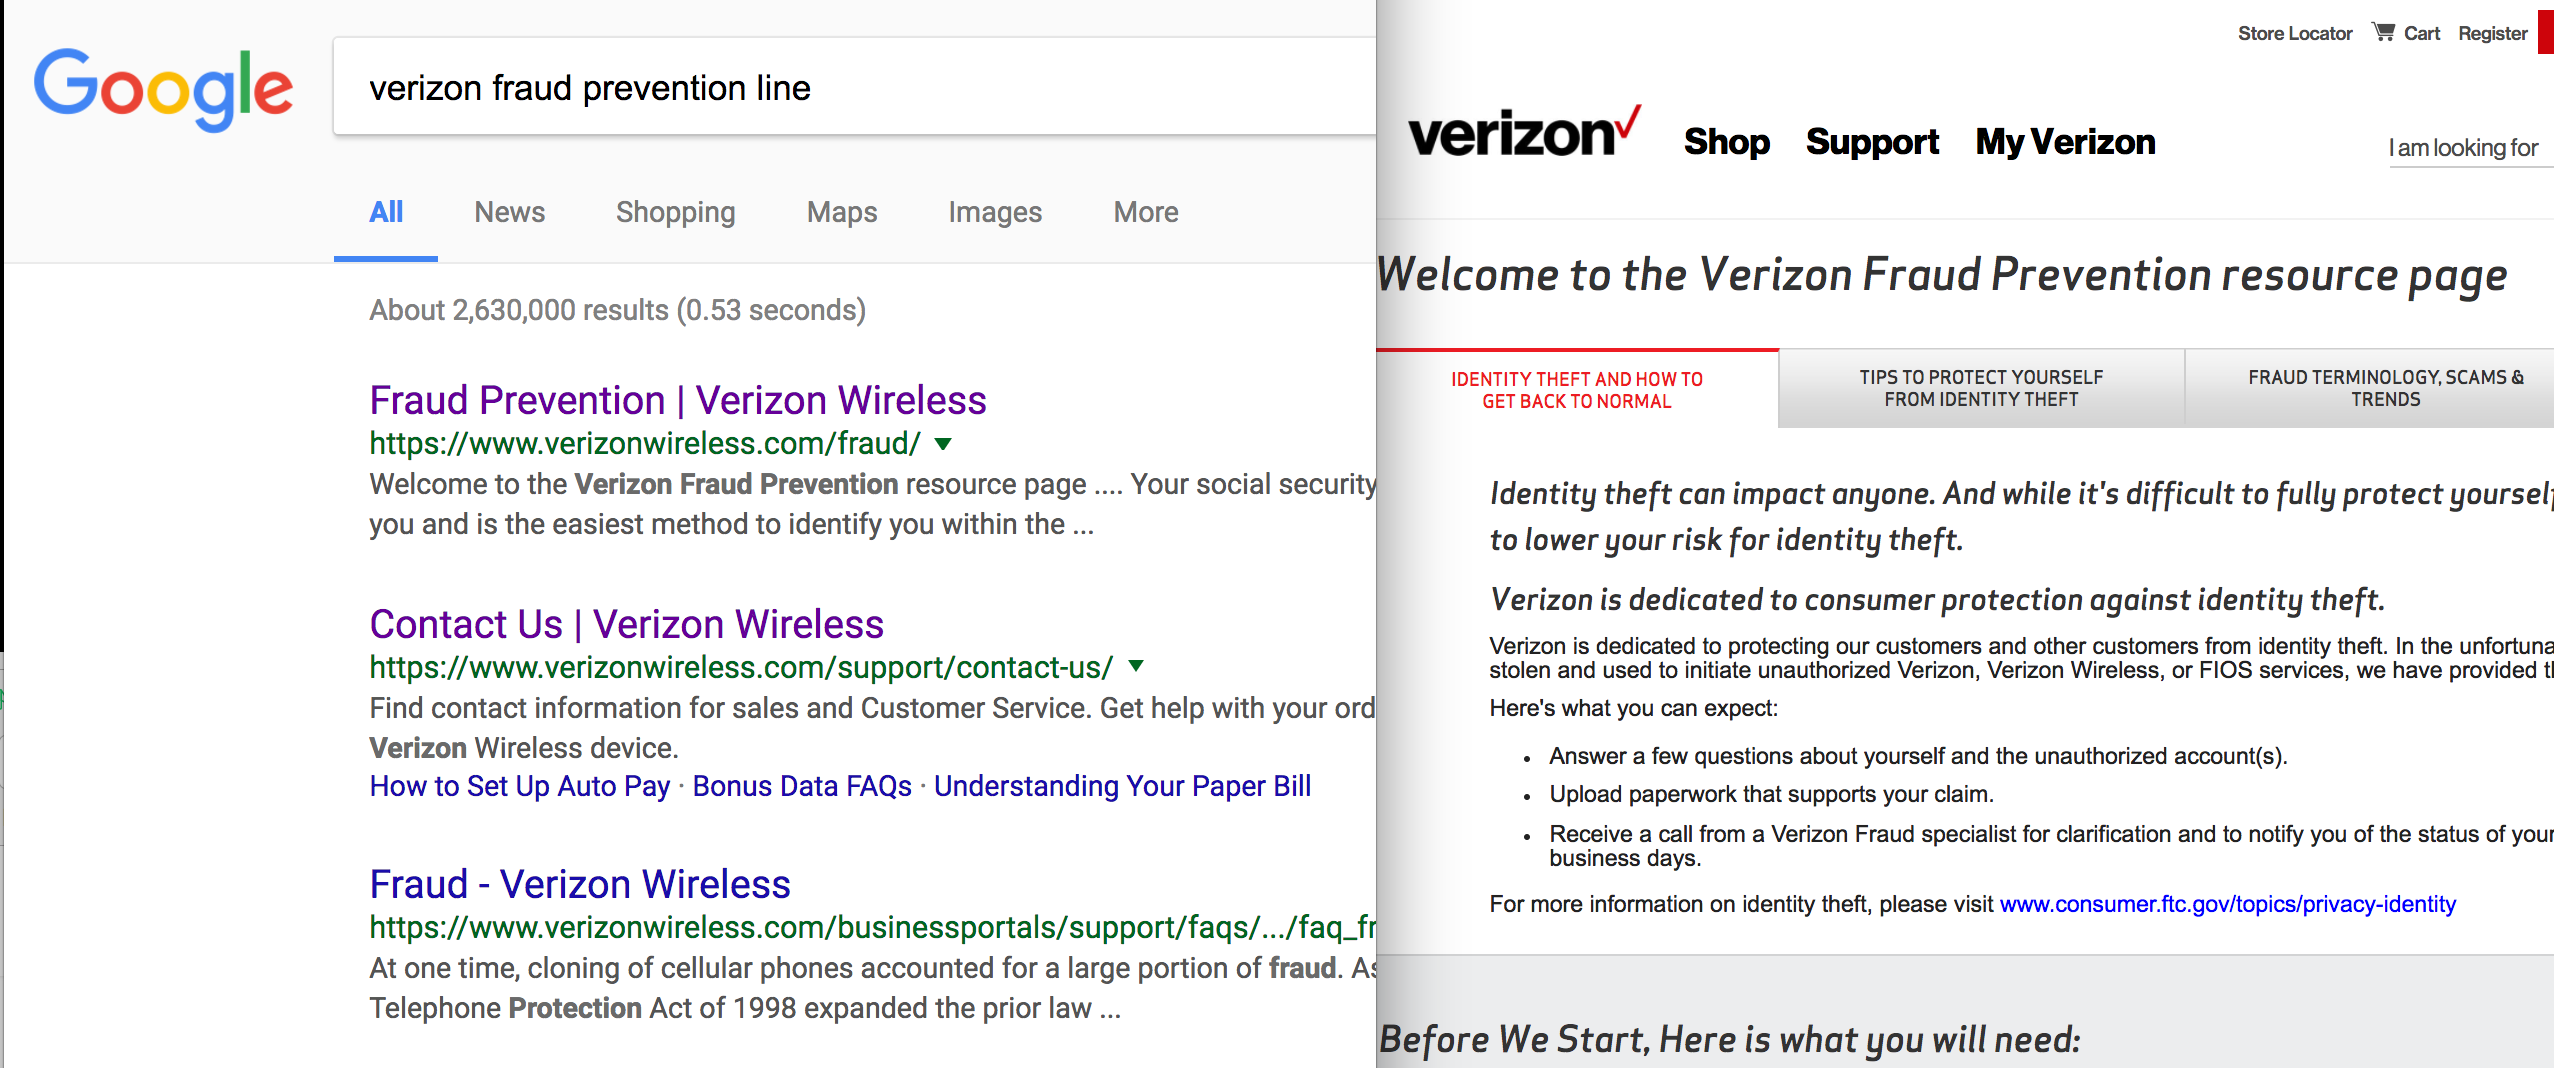 How to lose $8k worth of bitcoin in 15 minutes with Verizon